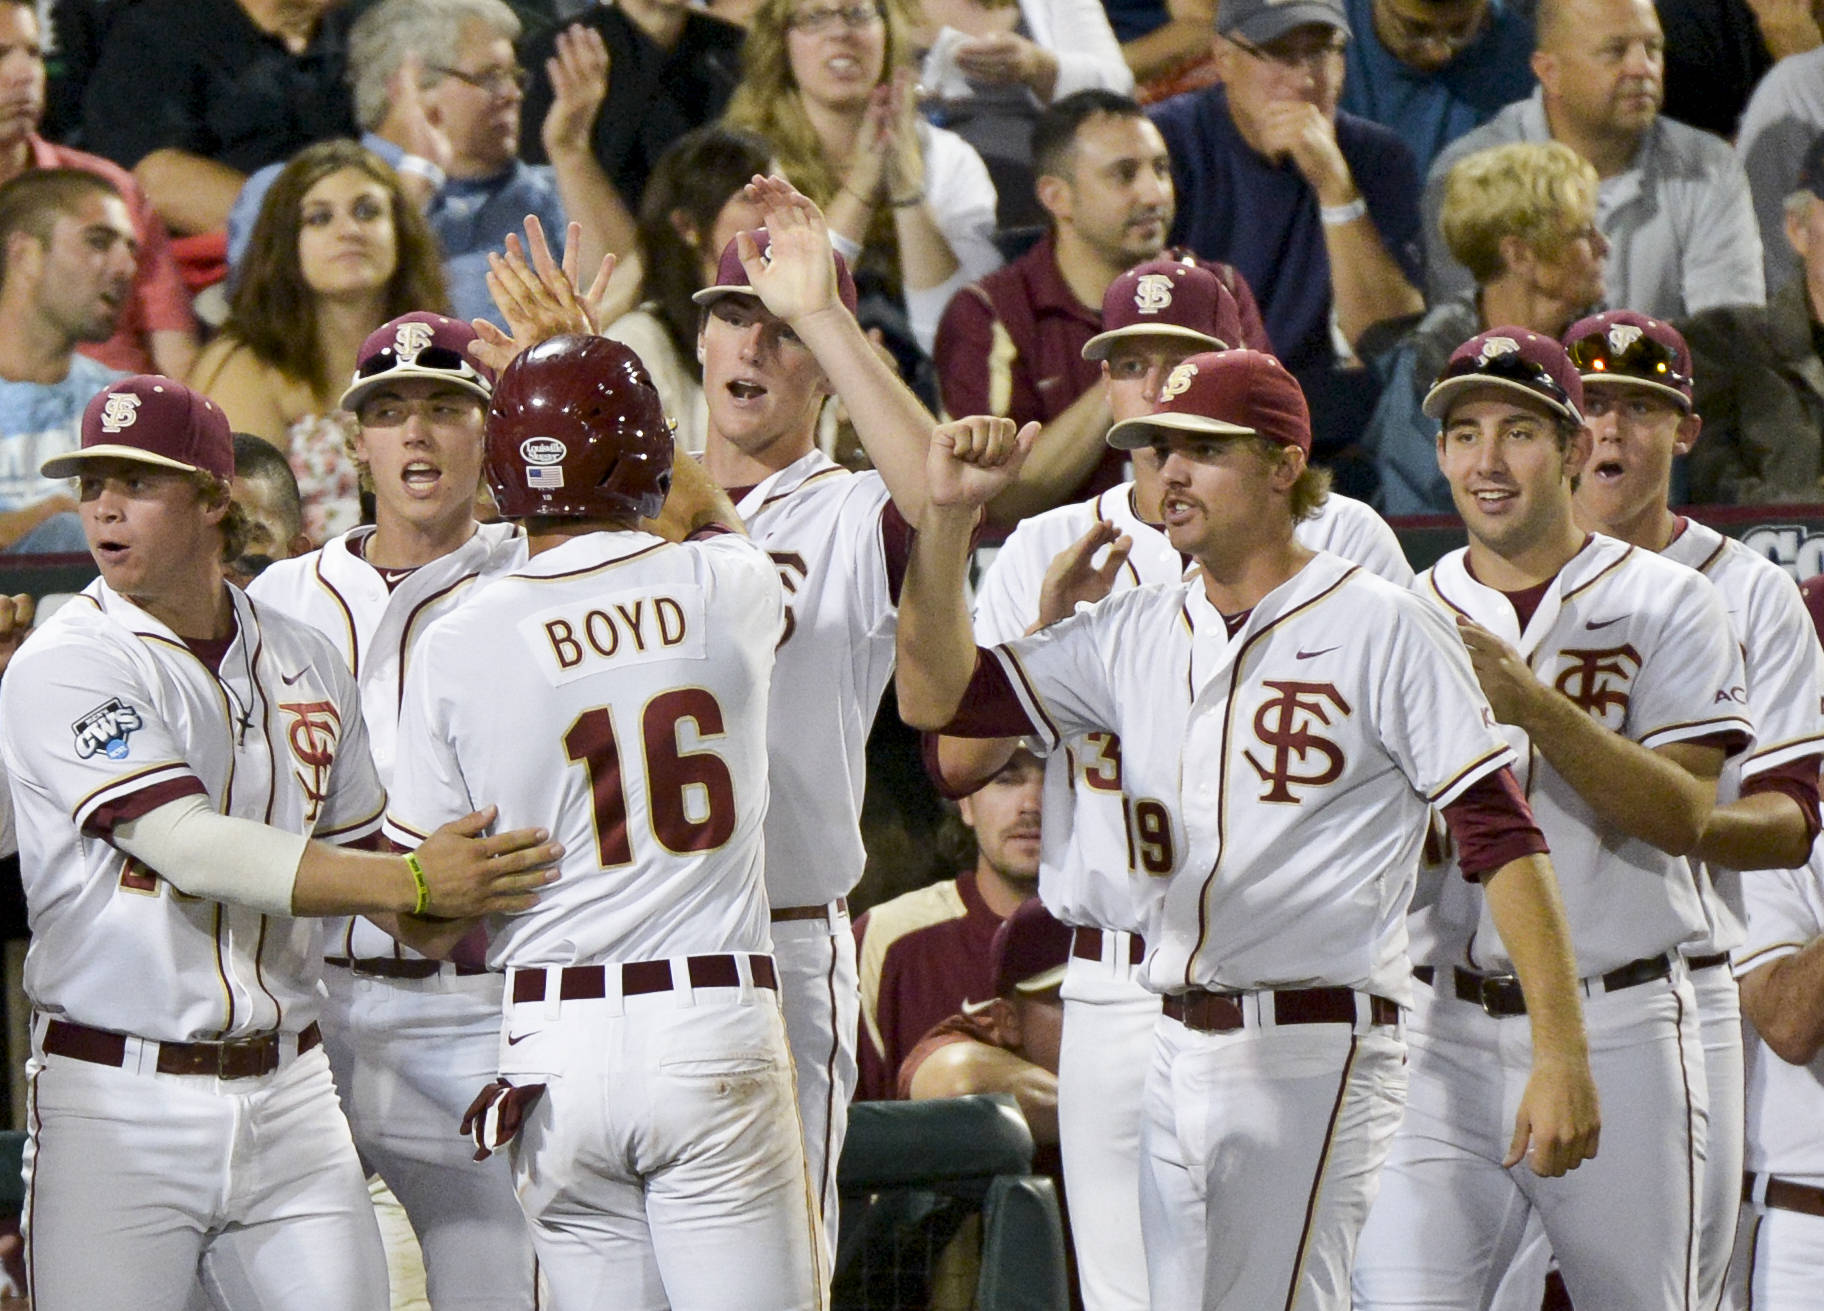 Florida State's Jayce Boyd (16), celebrates with teammates after he scored on a hit by John Holland. (AP Photo/Ted Kirk)